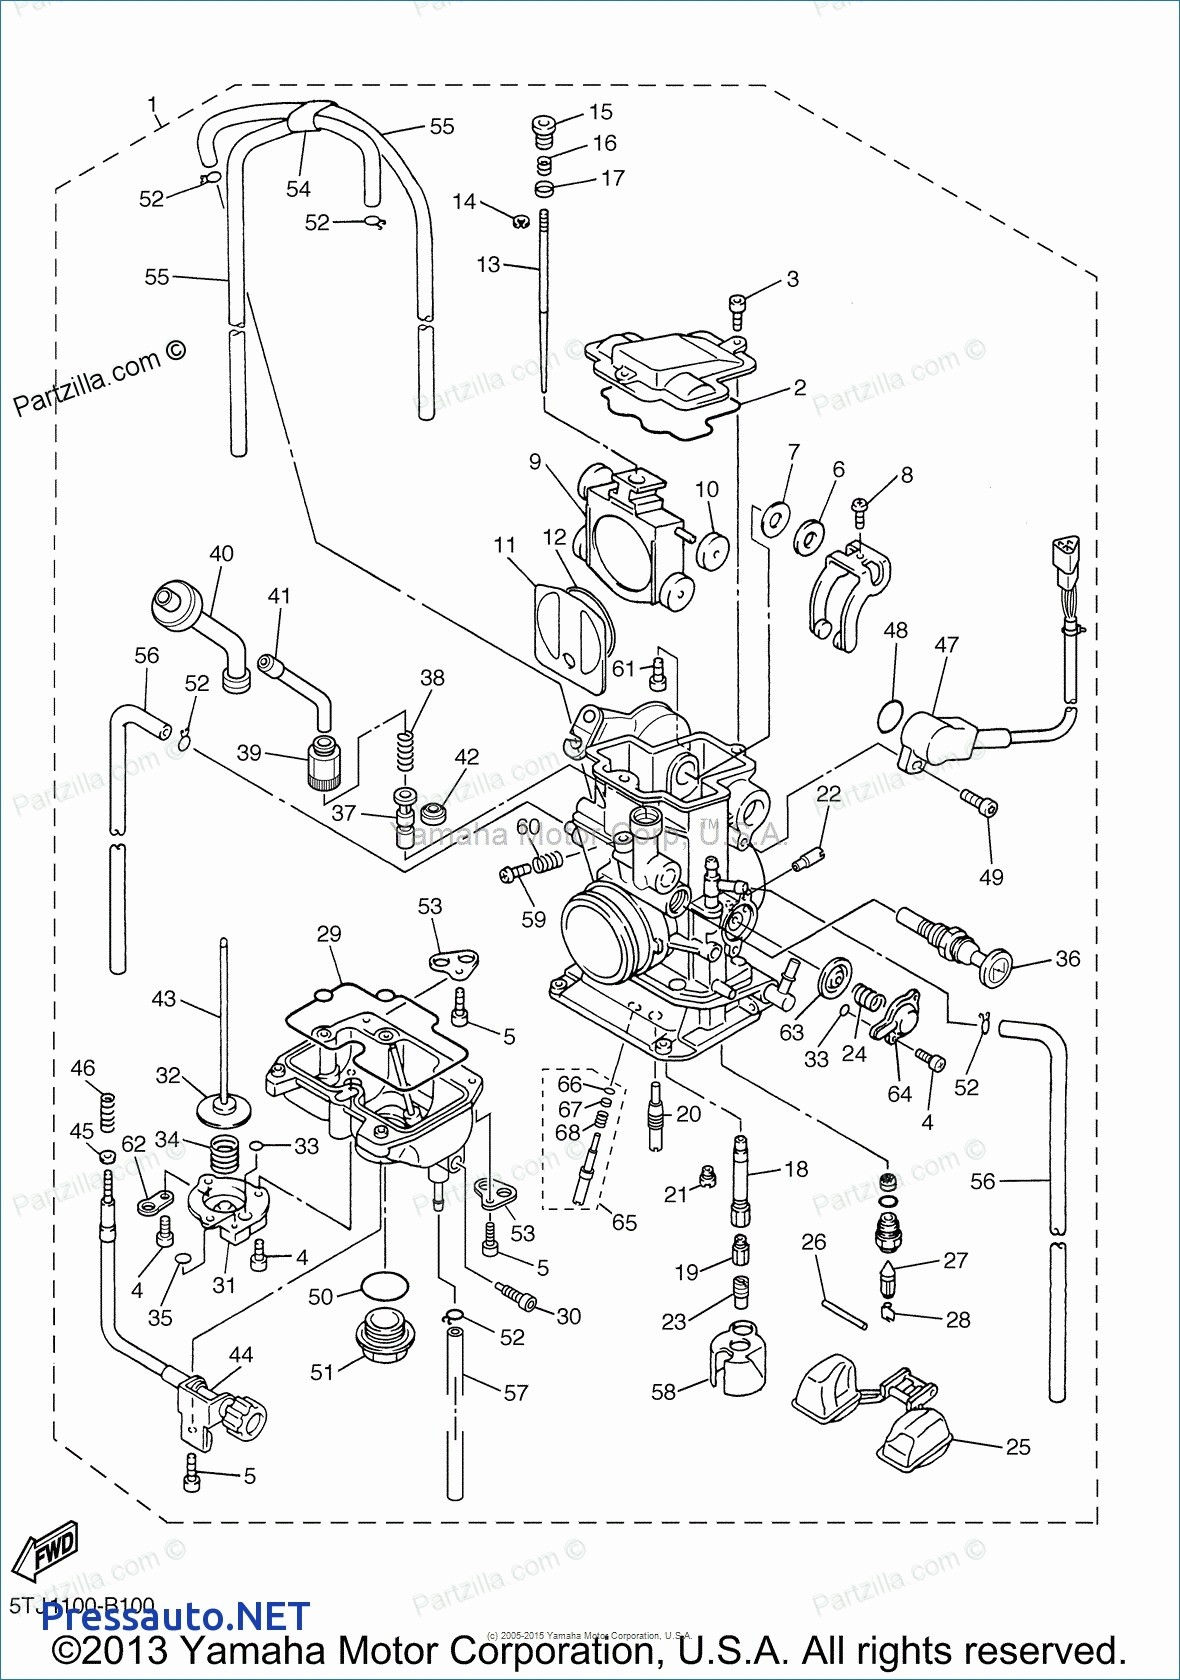 05 yfz 450 wiring diagram